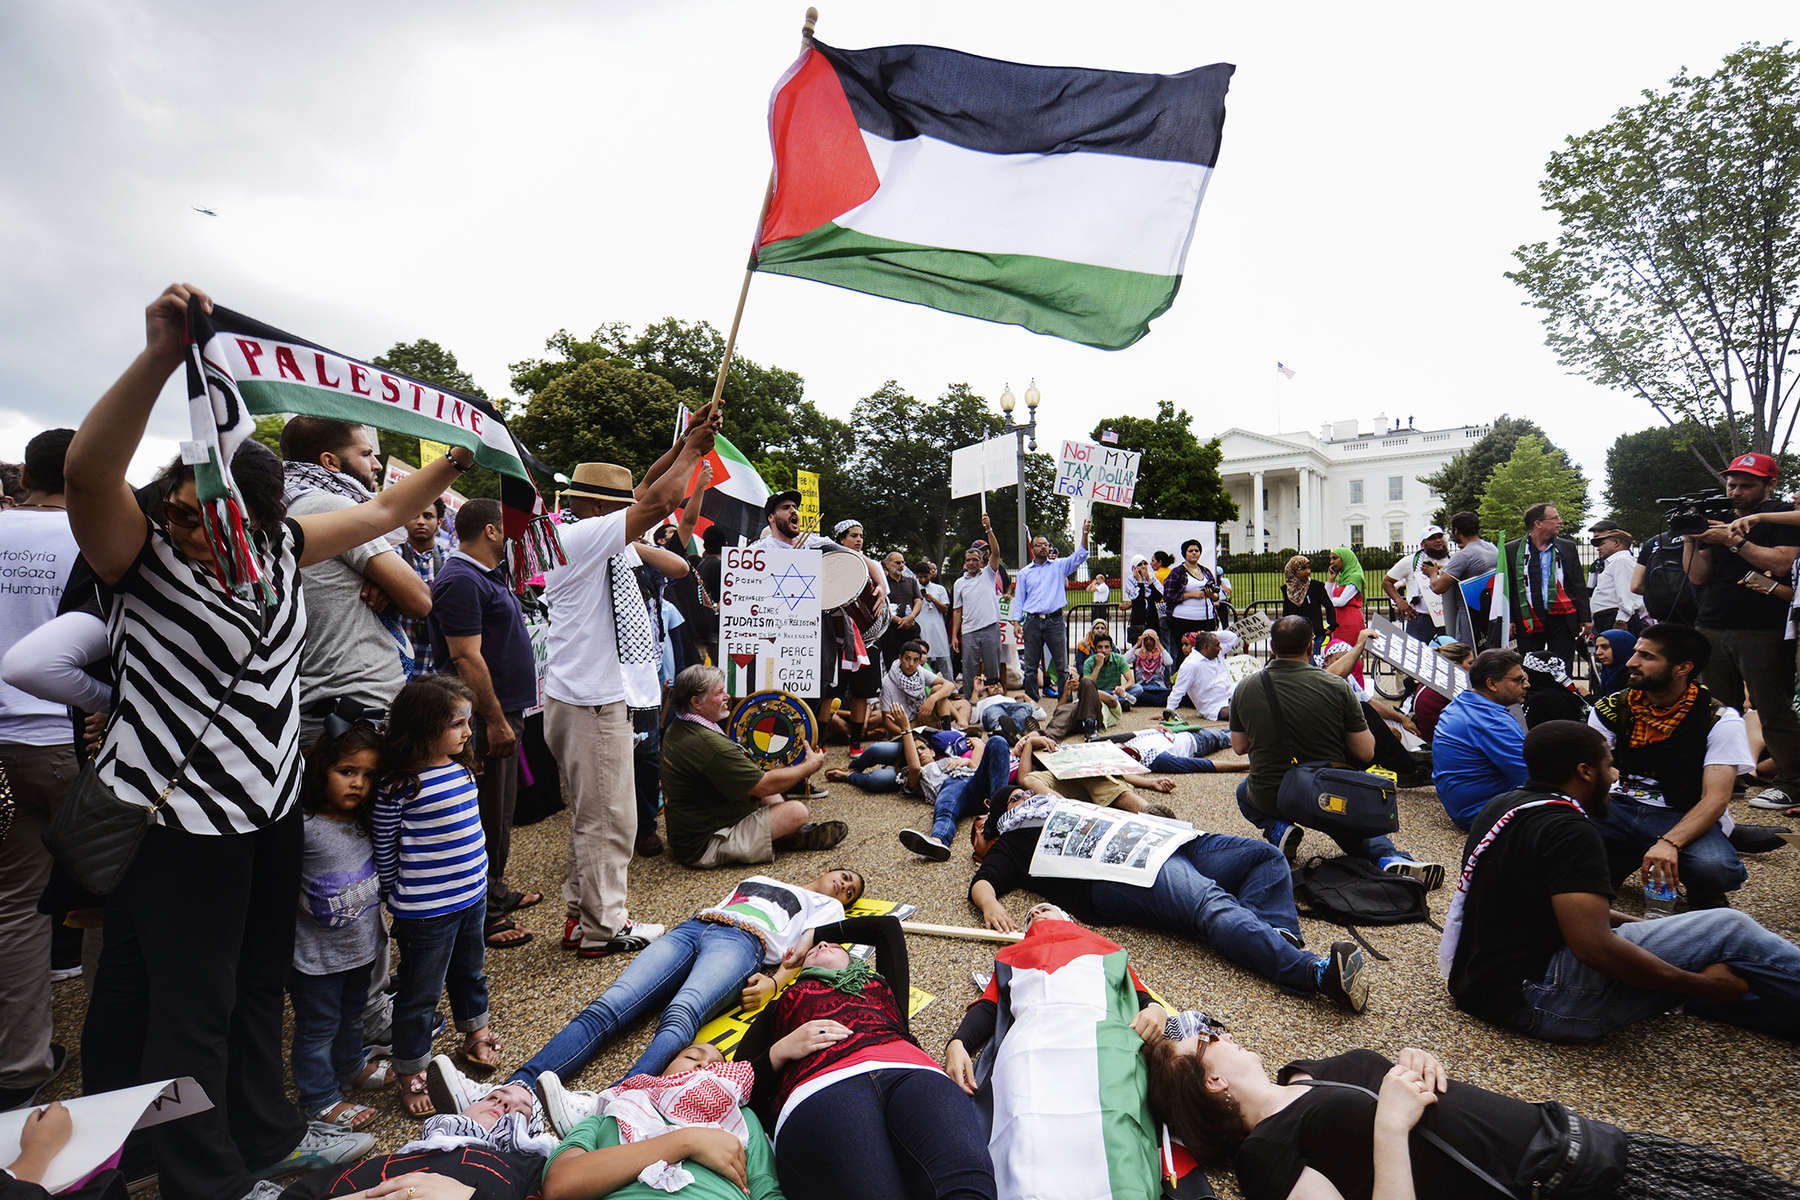 WASHINGTON, DC - AUGUST 2: Demonstrators lay down together in protest, while attending a rally to support the ending of the violence in Gaza rally in front of the White House in Washington, Saturday, Aug. 2, 2014. The group's chants could be heard from the north lawn of the White House.  (Photo by Amanda Voisard/For the Washington Post)